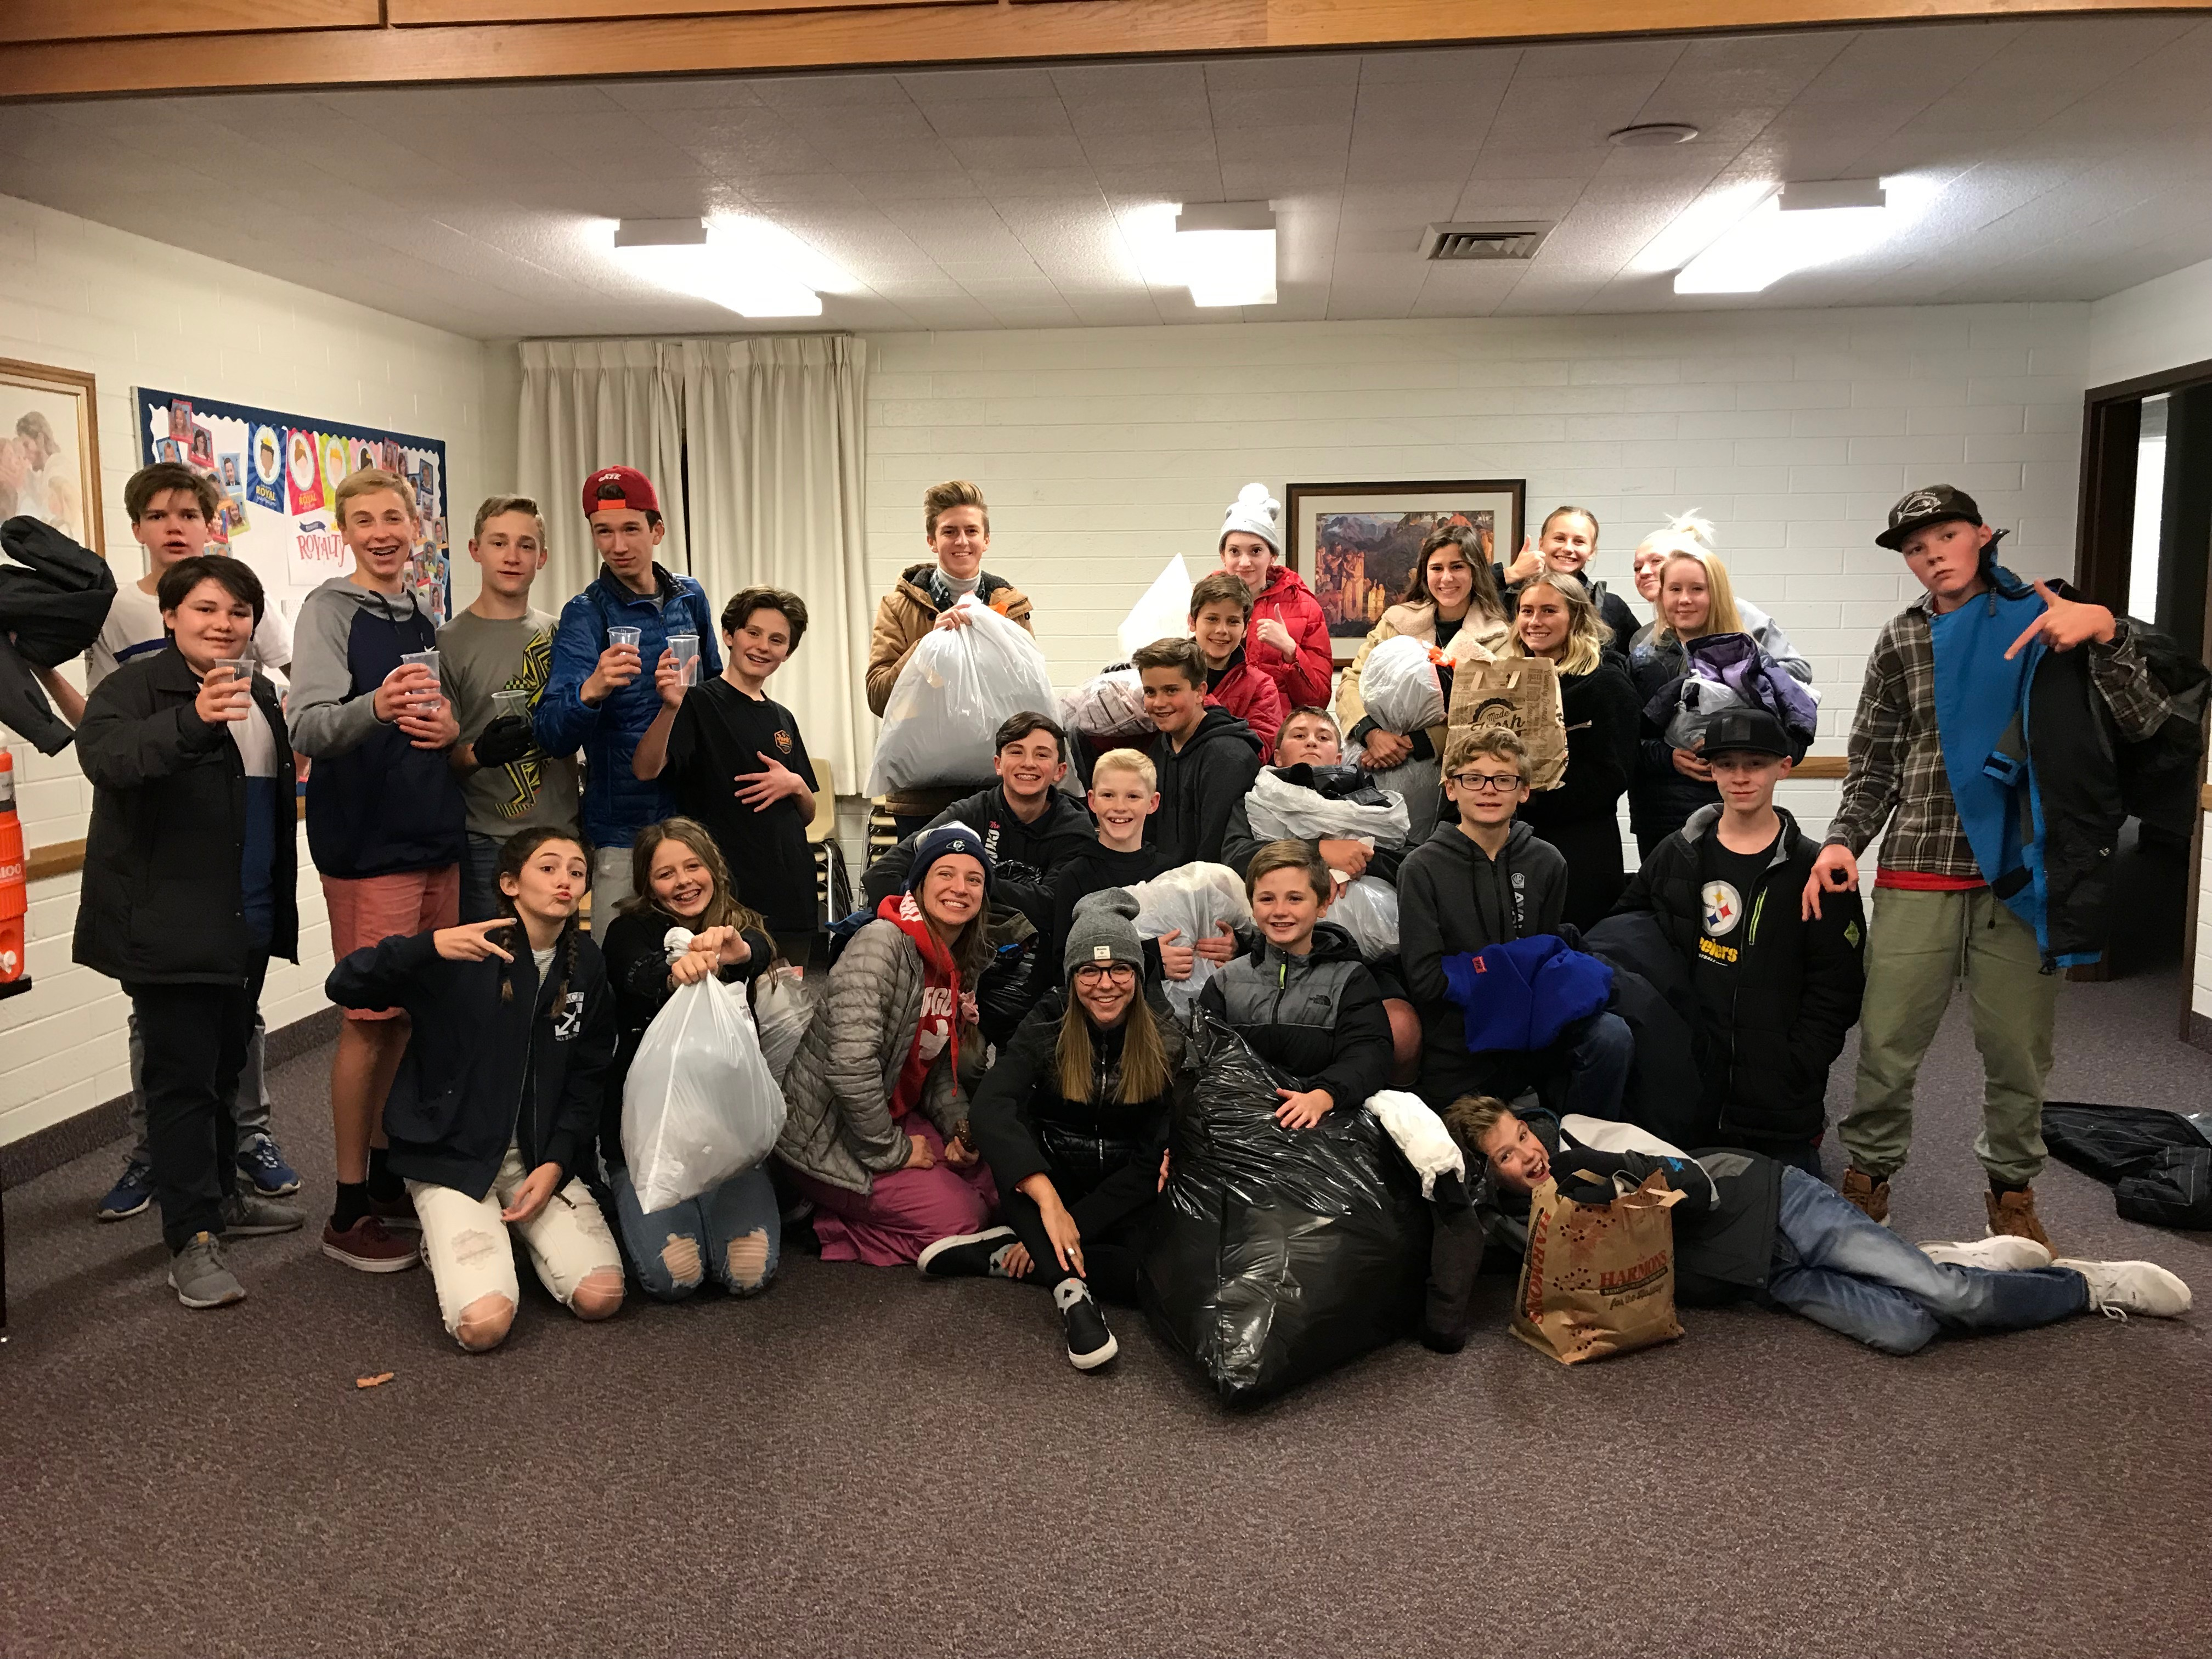 Youth groups from the Draper 5th ward assembled to help collect coat donations for the Ferran family's November project.